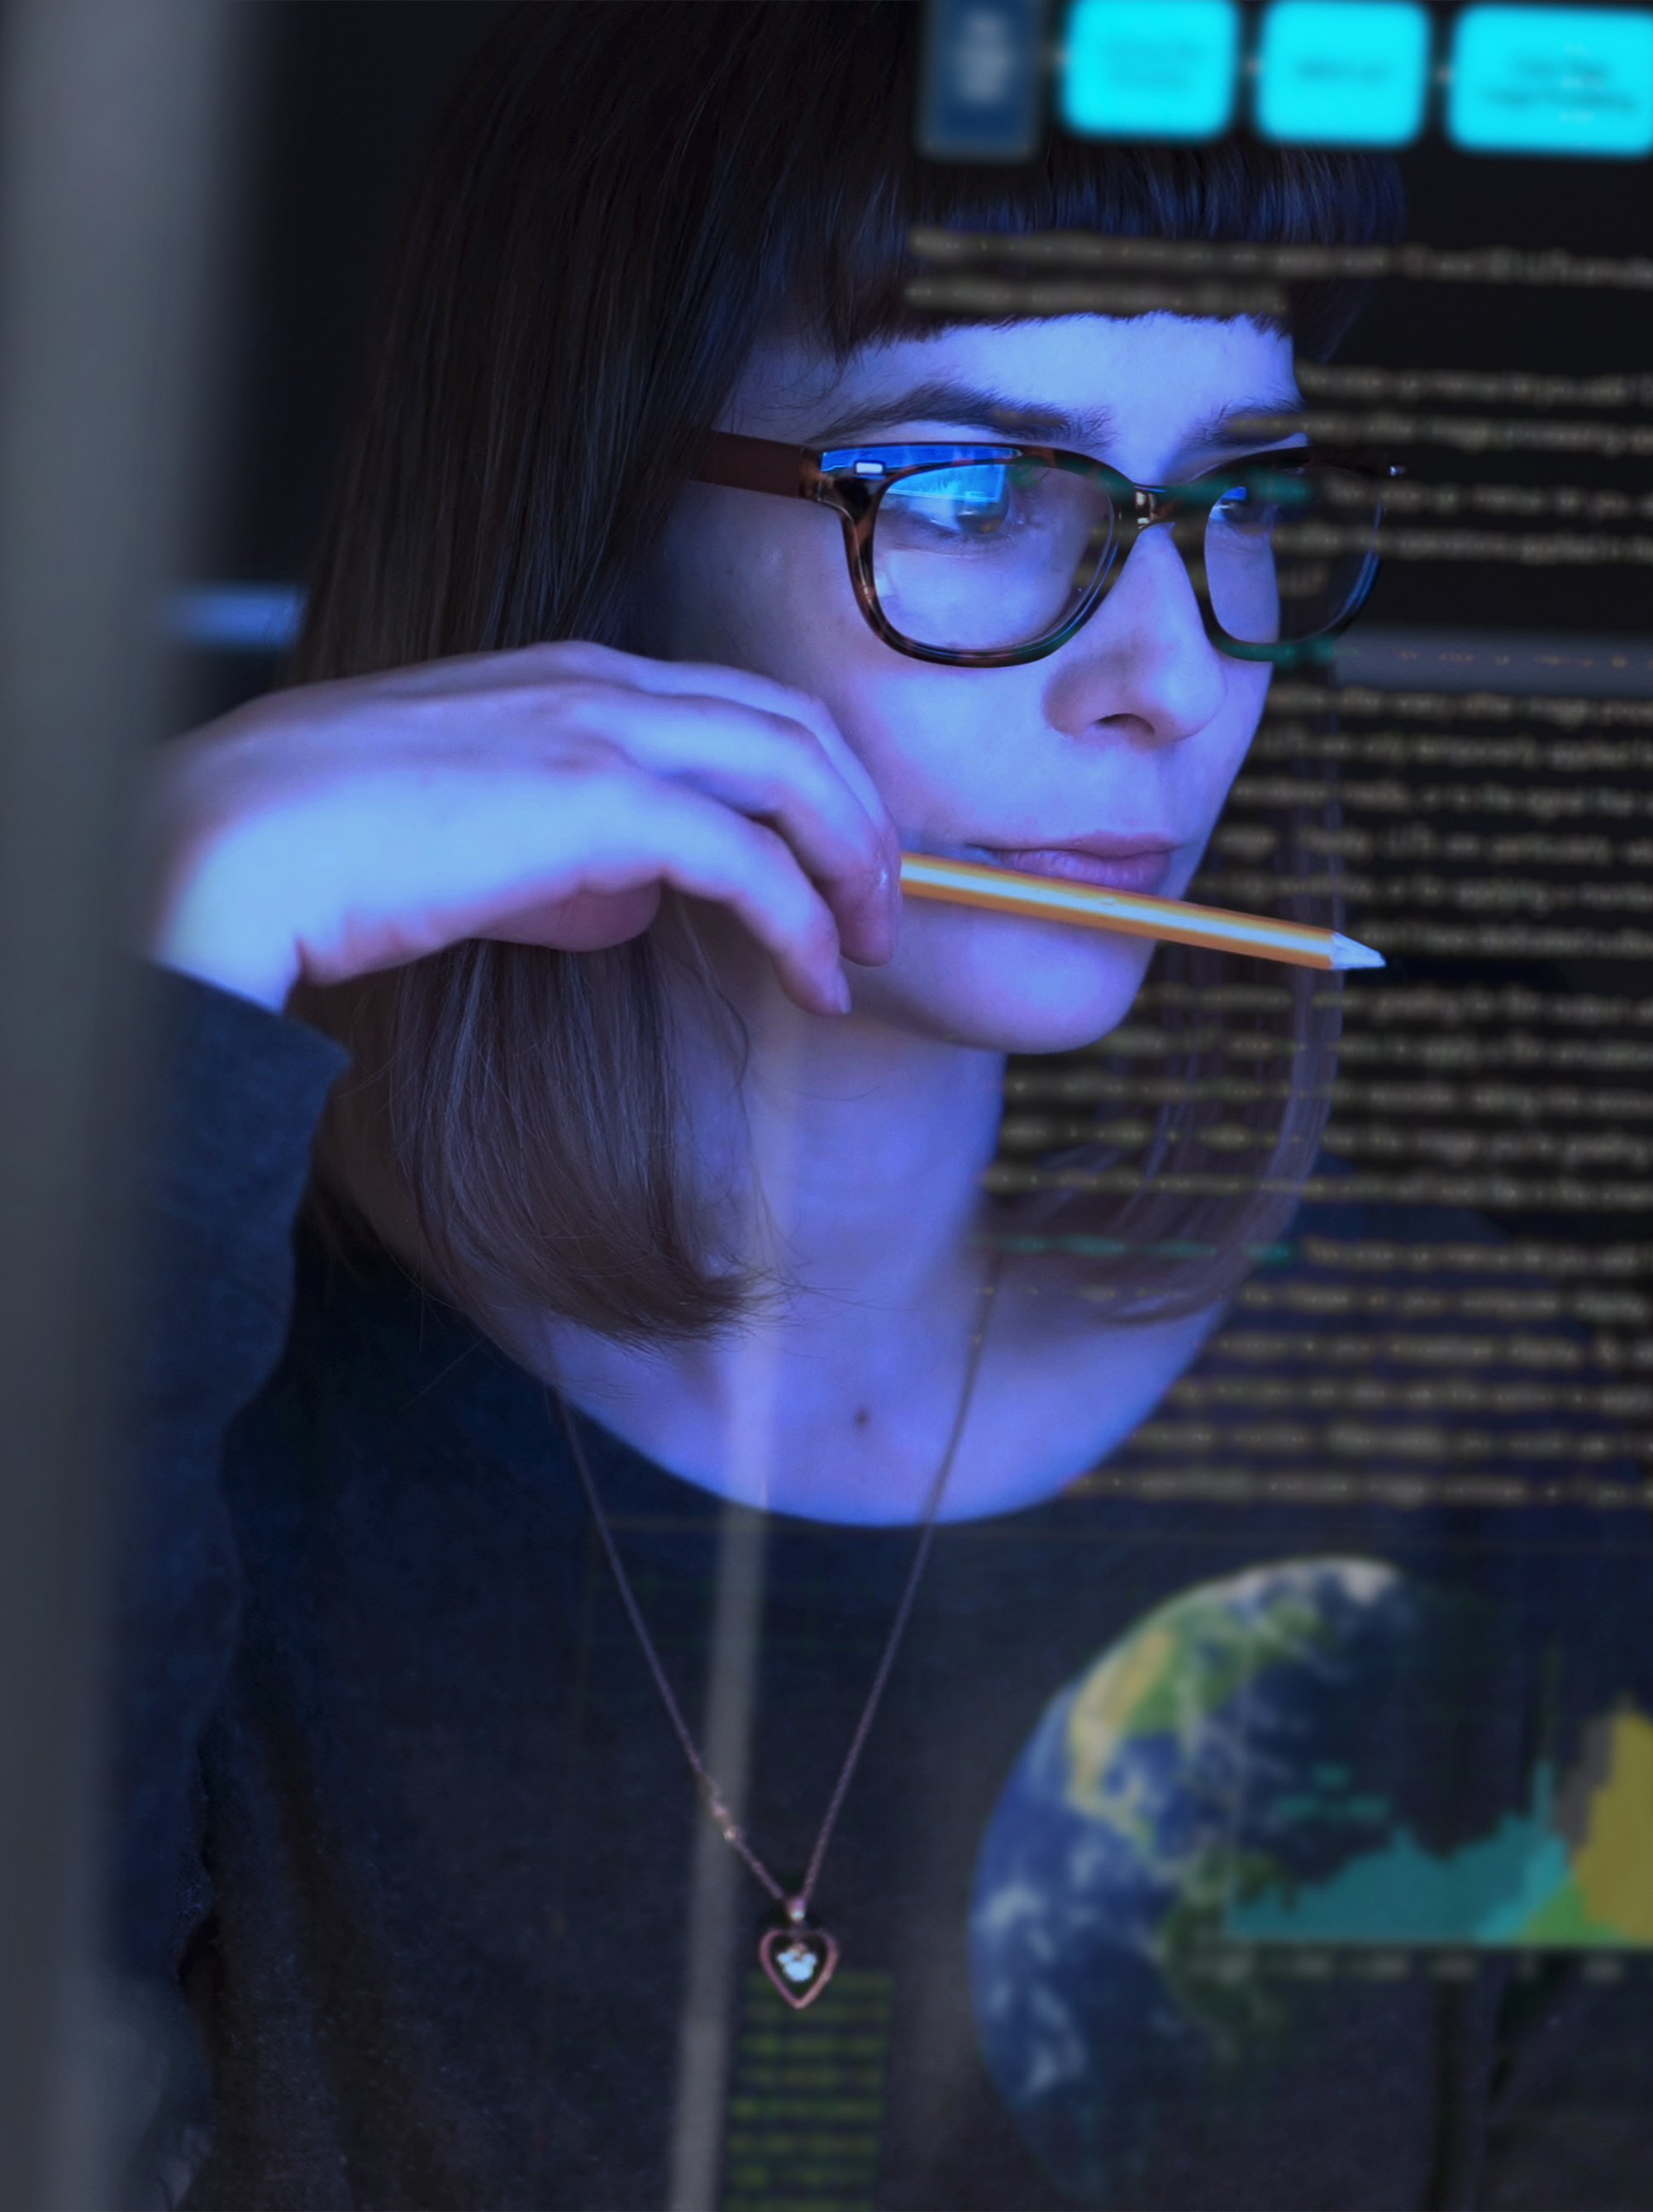 woman studying a see through computer screen